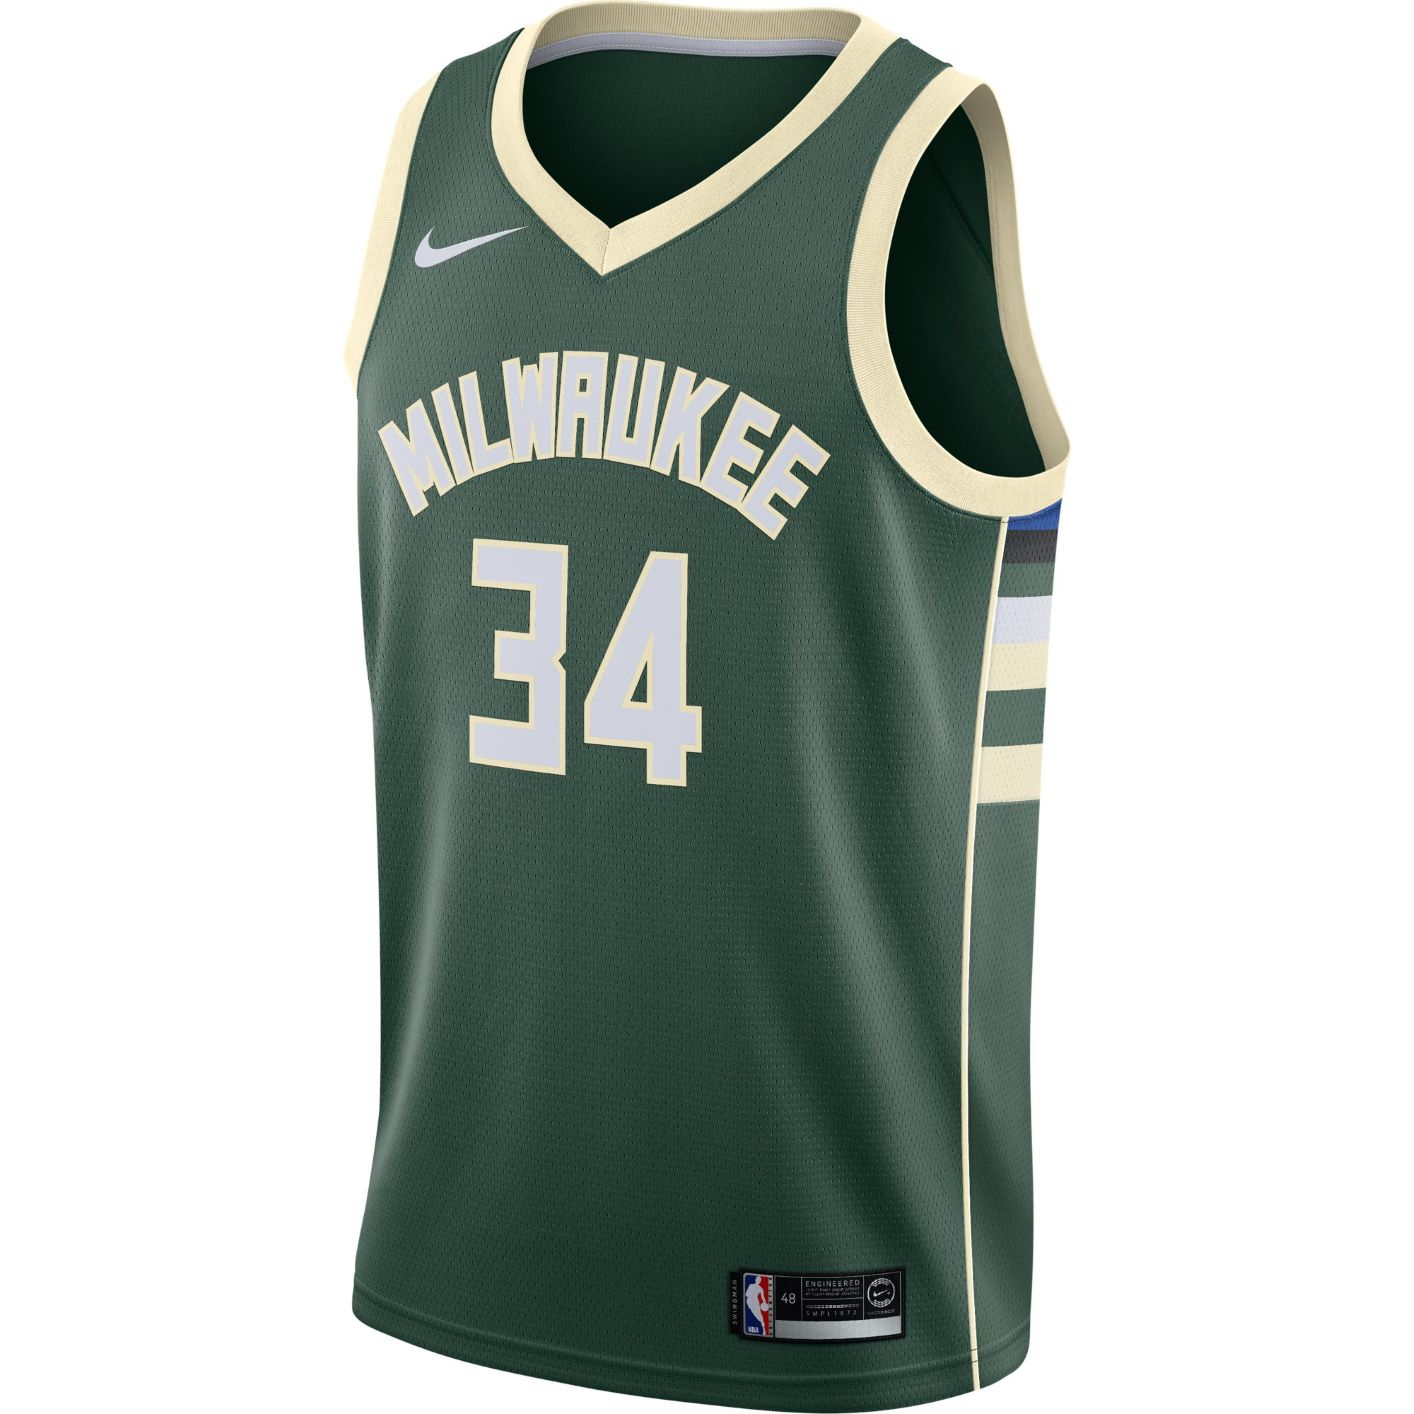 12a36acbfd1 Milwaukee Bucks Team Shop - Walmart.com